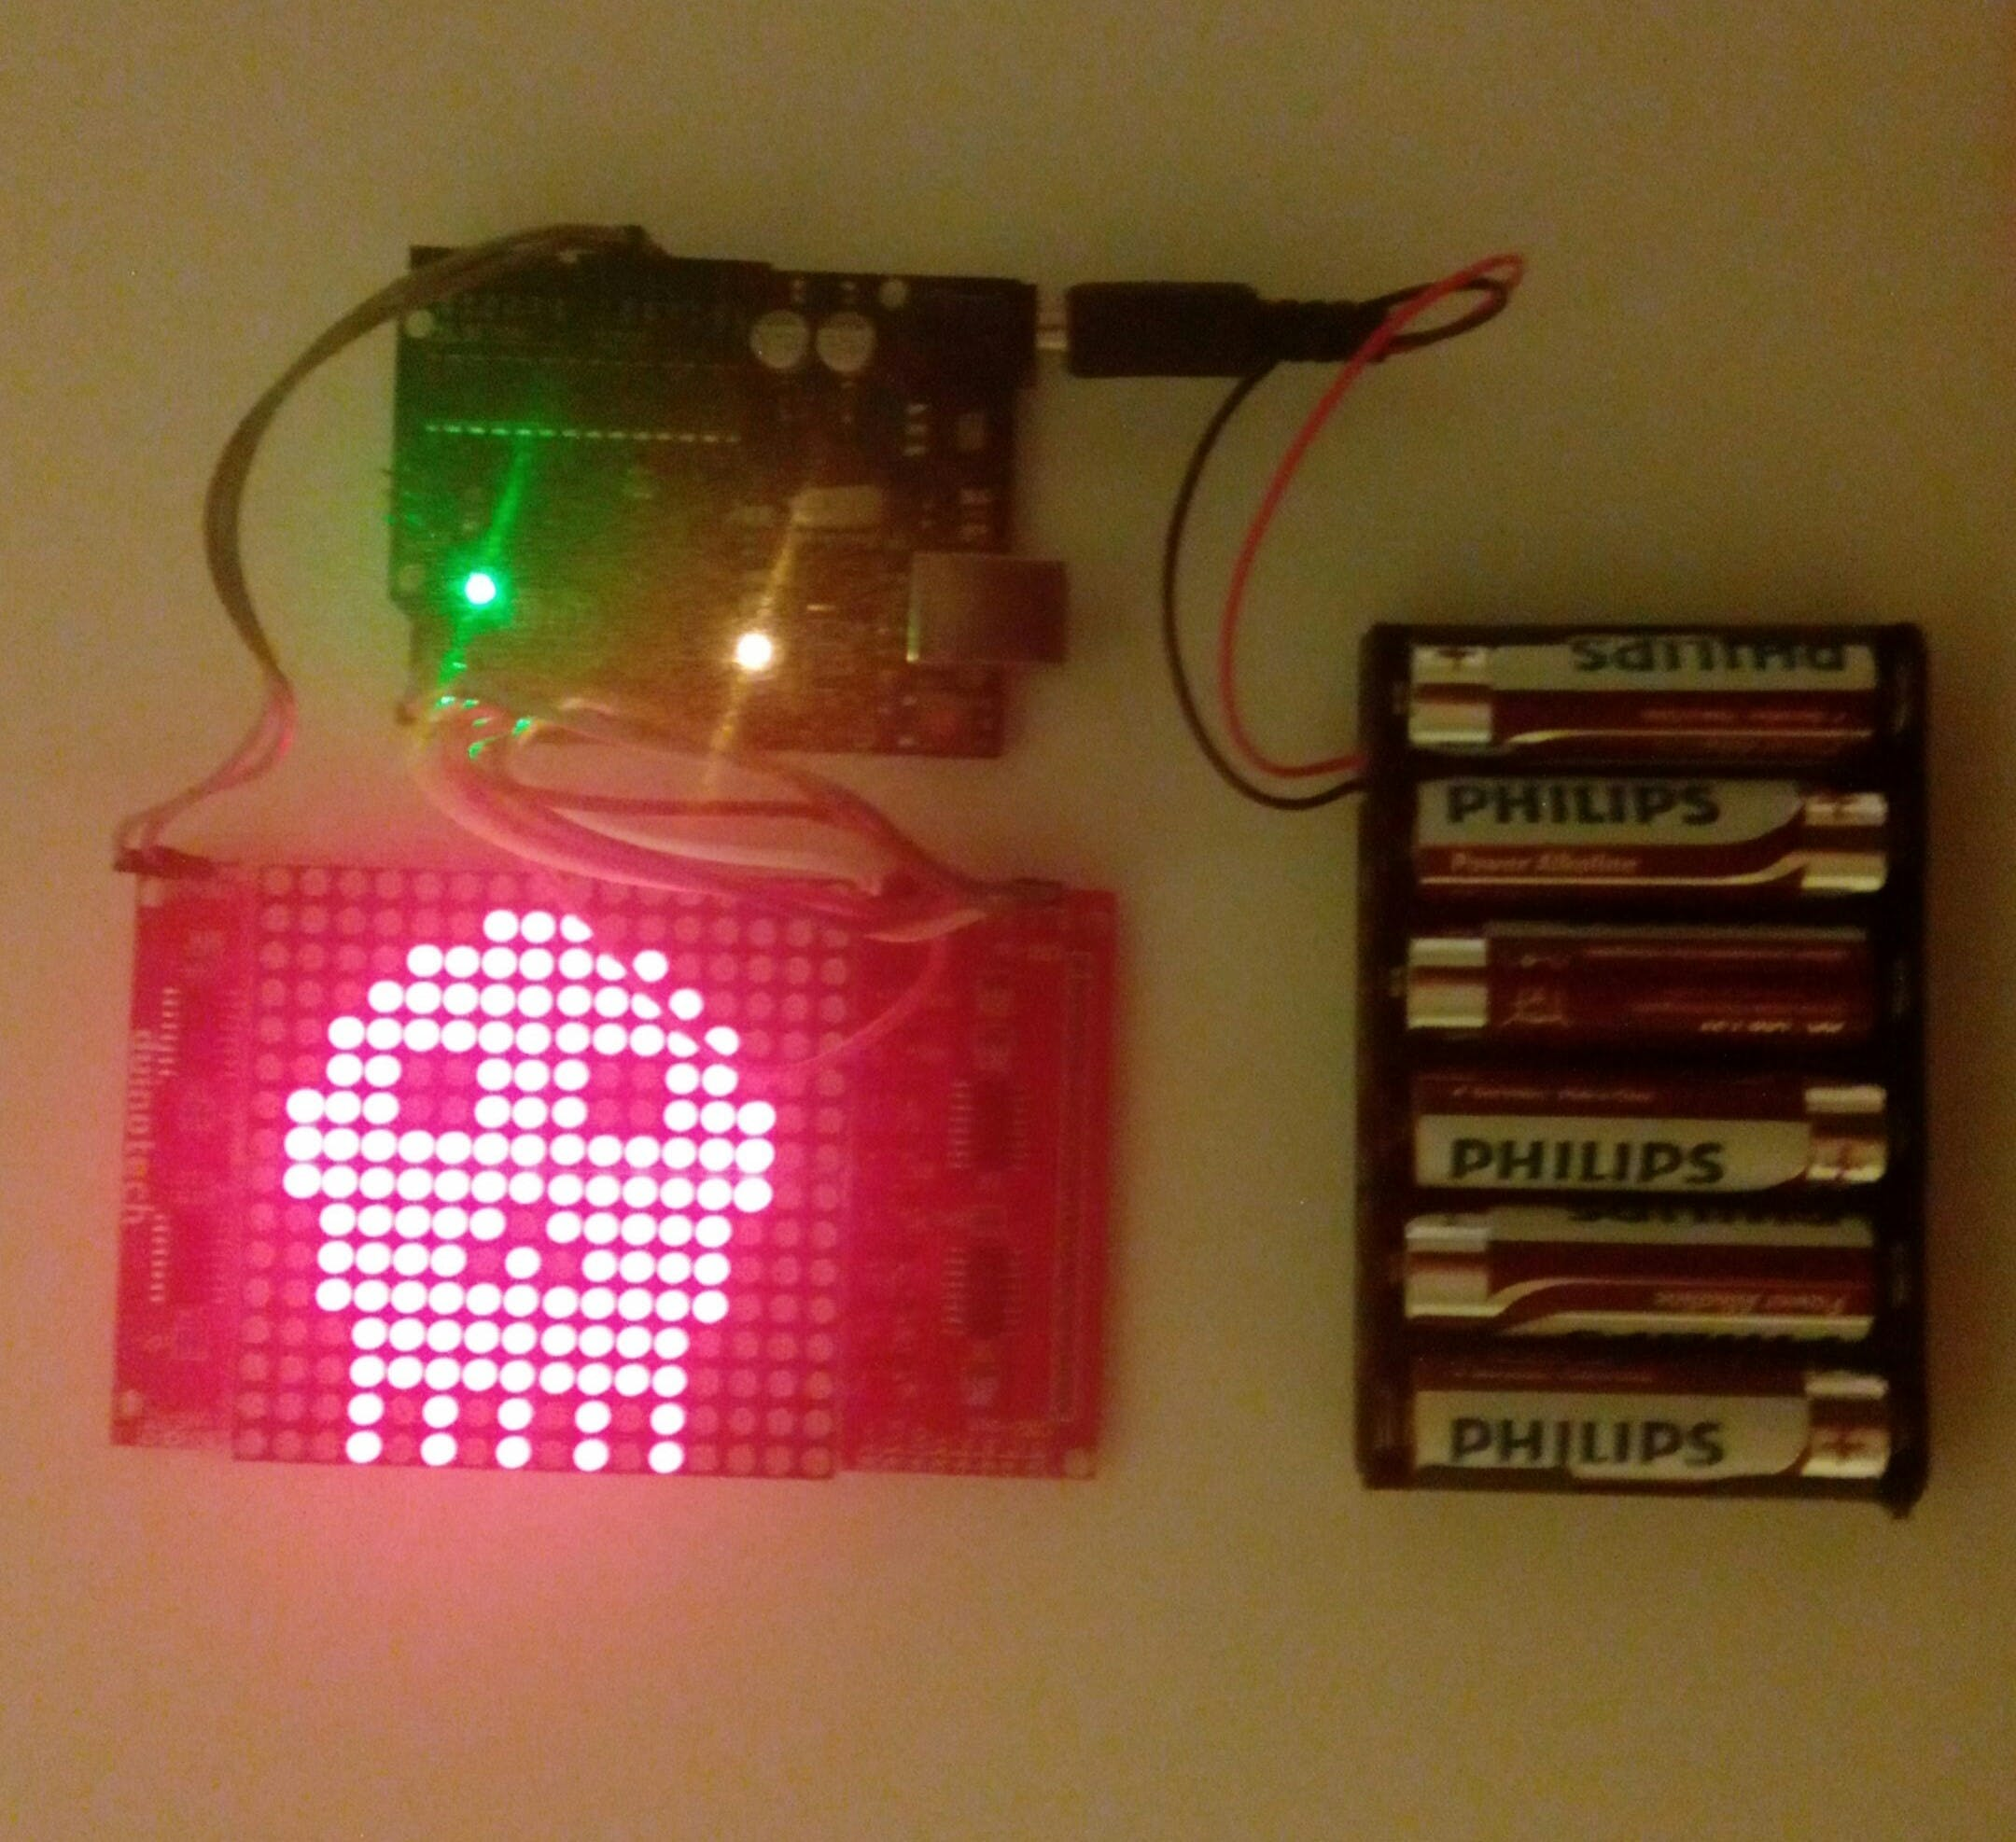 16x16 LED Matrix Display